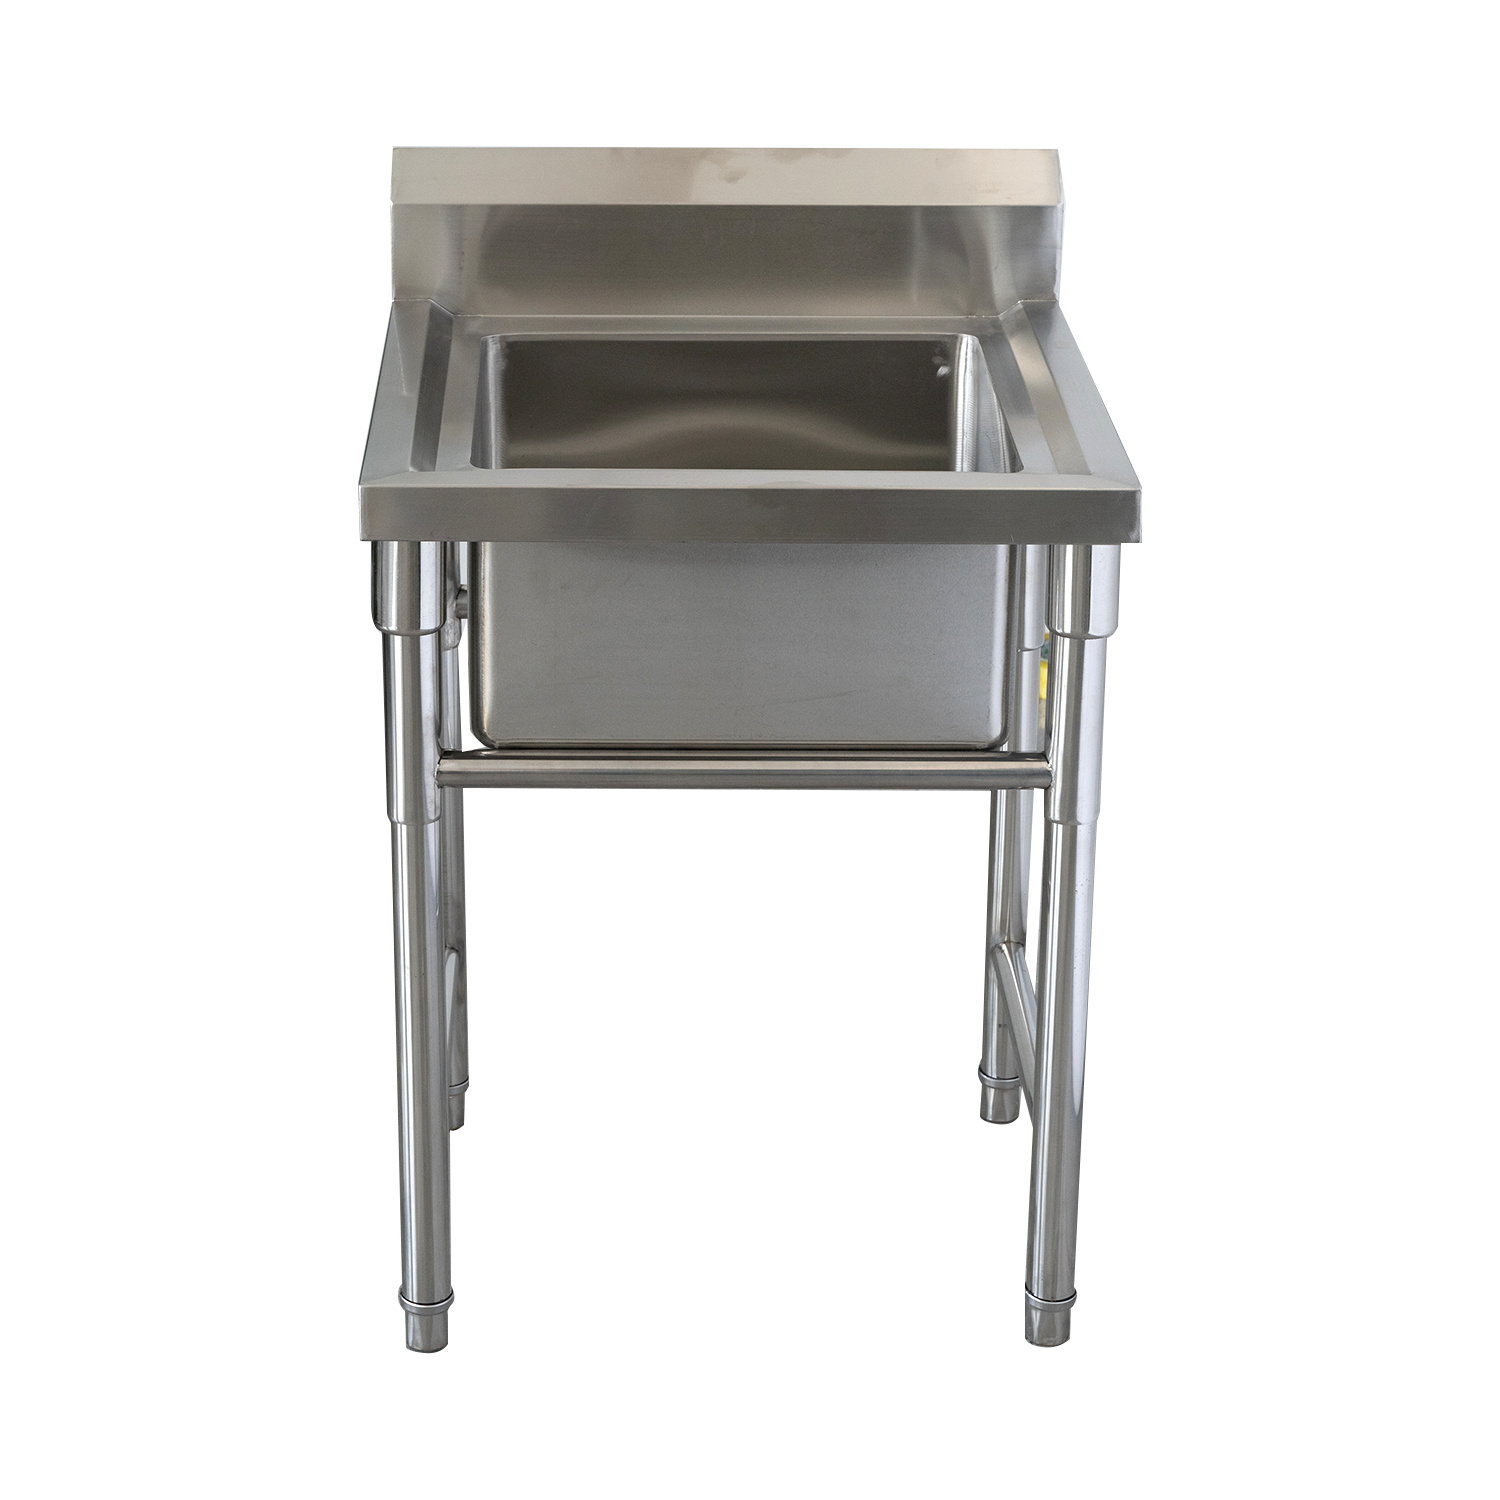 China Commercial Free Standing 201 316 Stainless Steel Single Bowl Kitchen Sink Table China Freestanding Double Bowl Stainless Steel Sink Stainless Steel Kitchen Sink For Sale